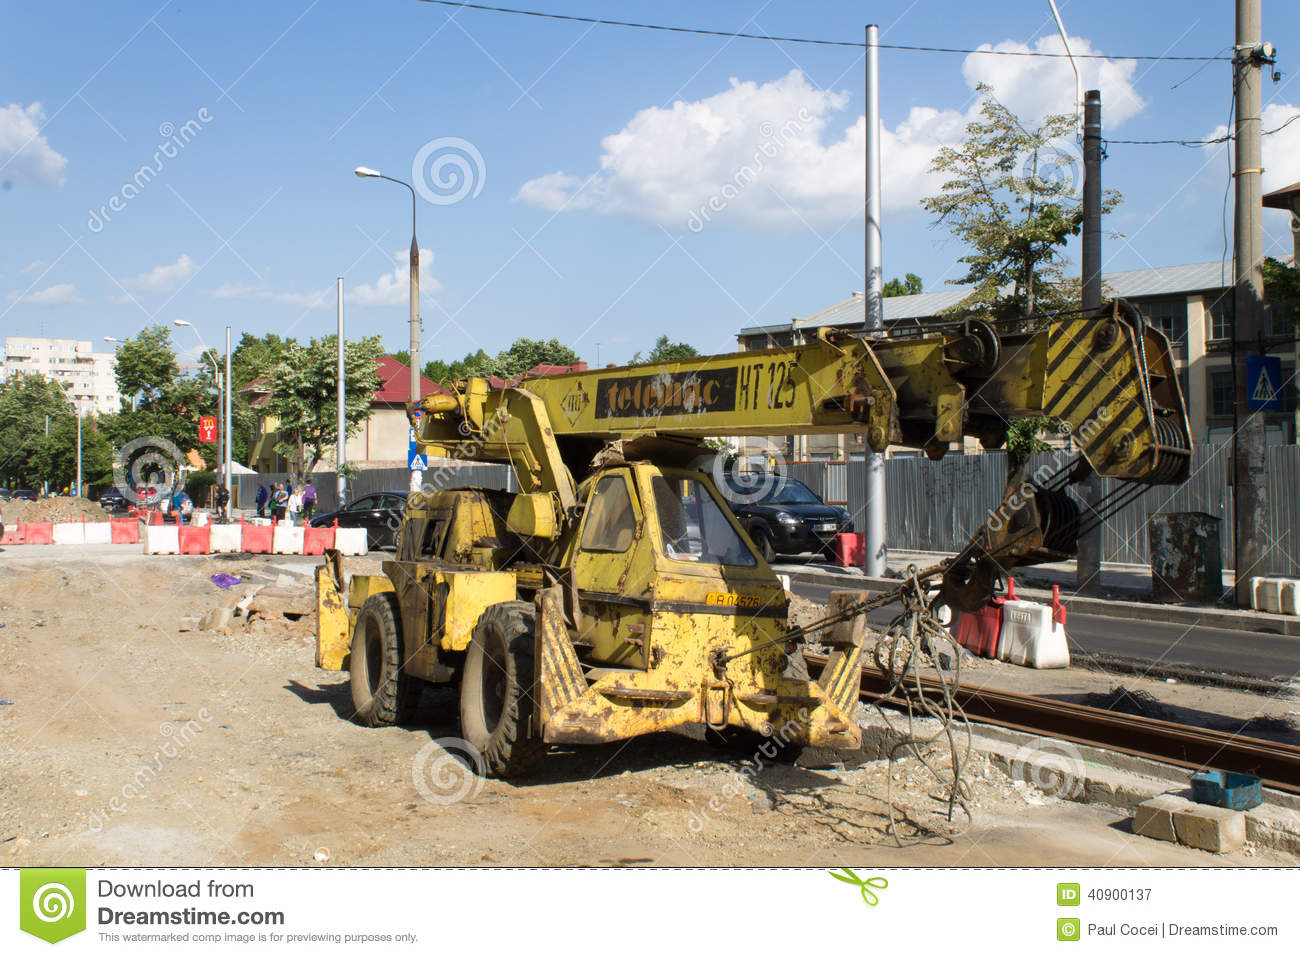 Auto Crane 6006 Wiring Diagram 30 Images Old Streetcar Construction Site Resting Bucharest Working Progress Rehabilitation Railway 40900137 48 2004 Boom